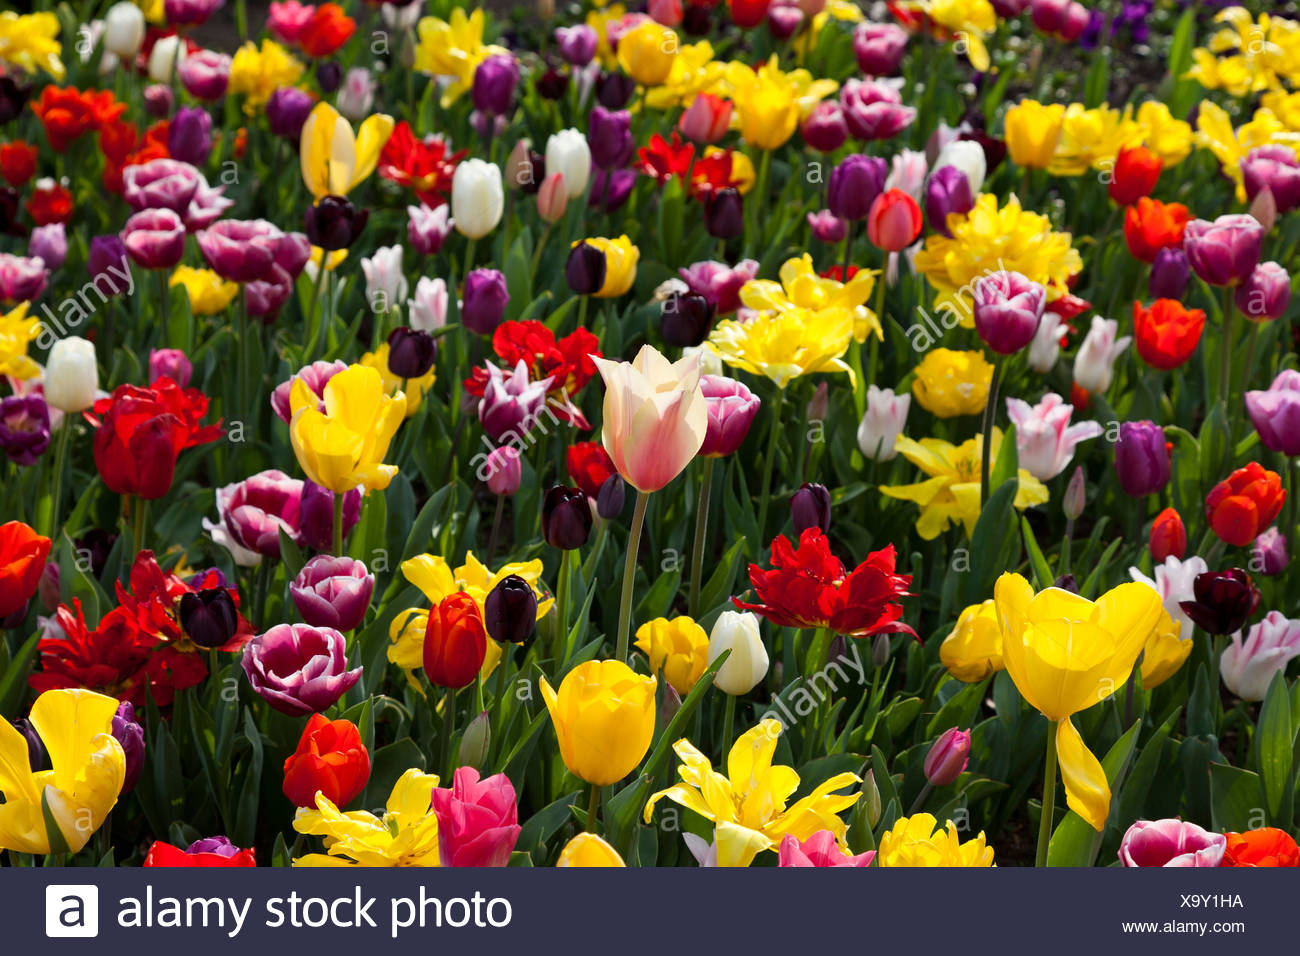 Europe, Germany, North Rhine Westphalia, View of multi coloured tulip flower bed - Stock Image